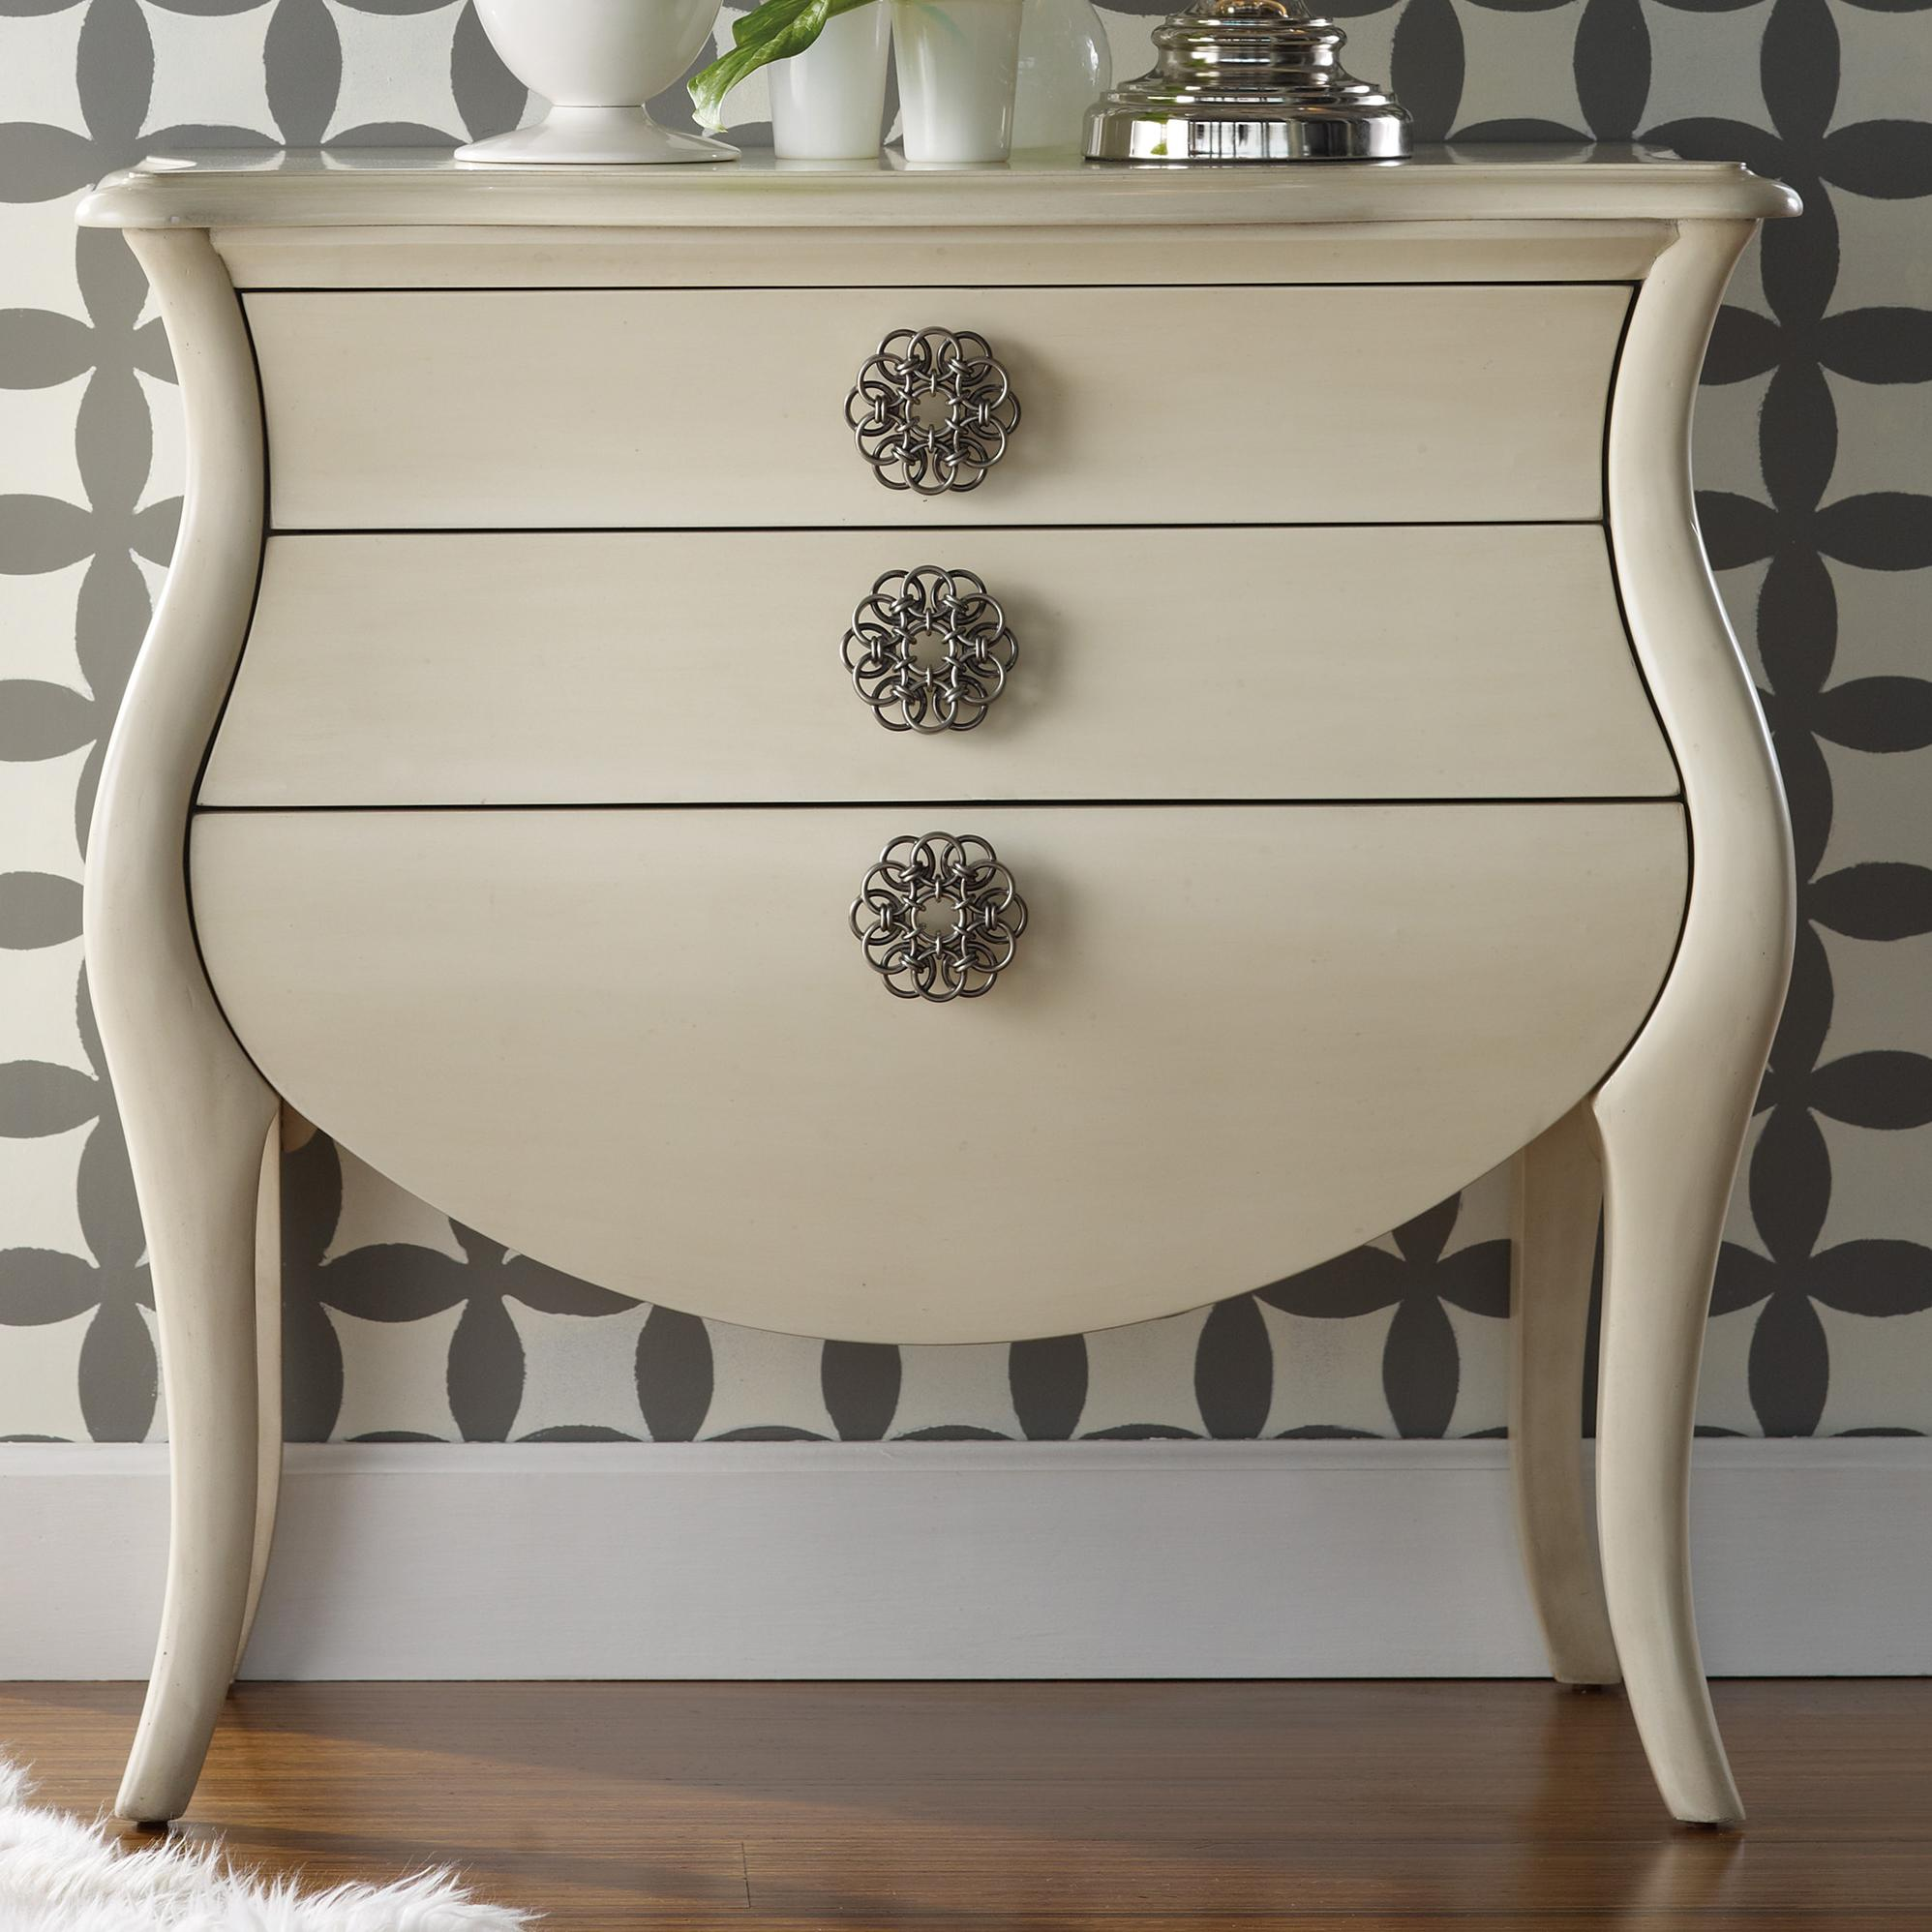 Hooker Furniture Mélange 3 Drawer Pippa Bombe Chest AHFA Chest